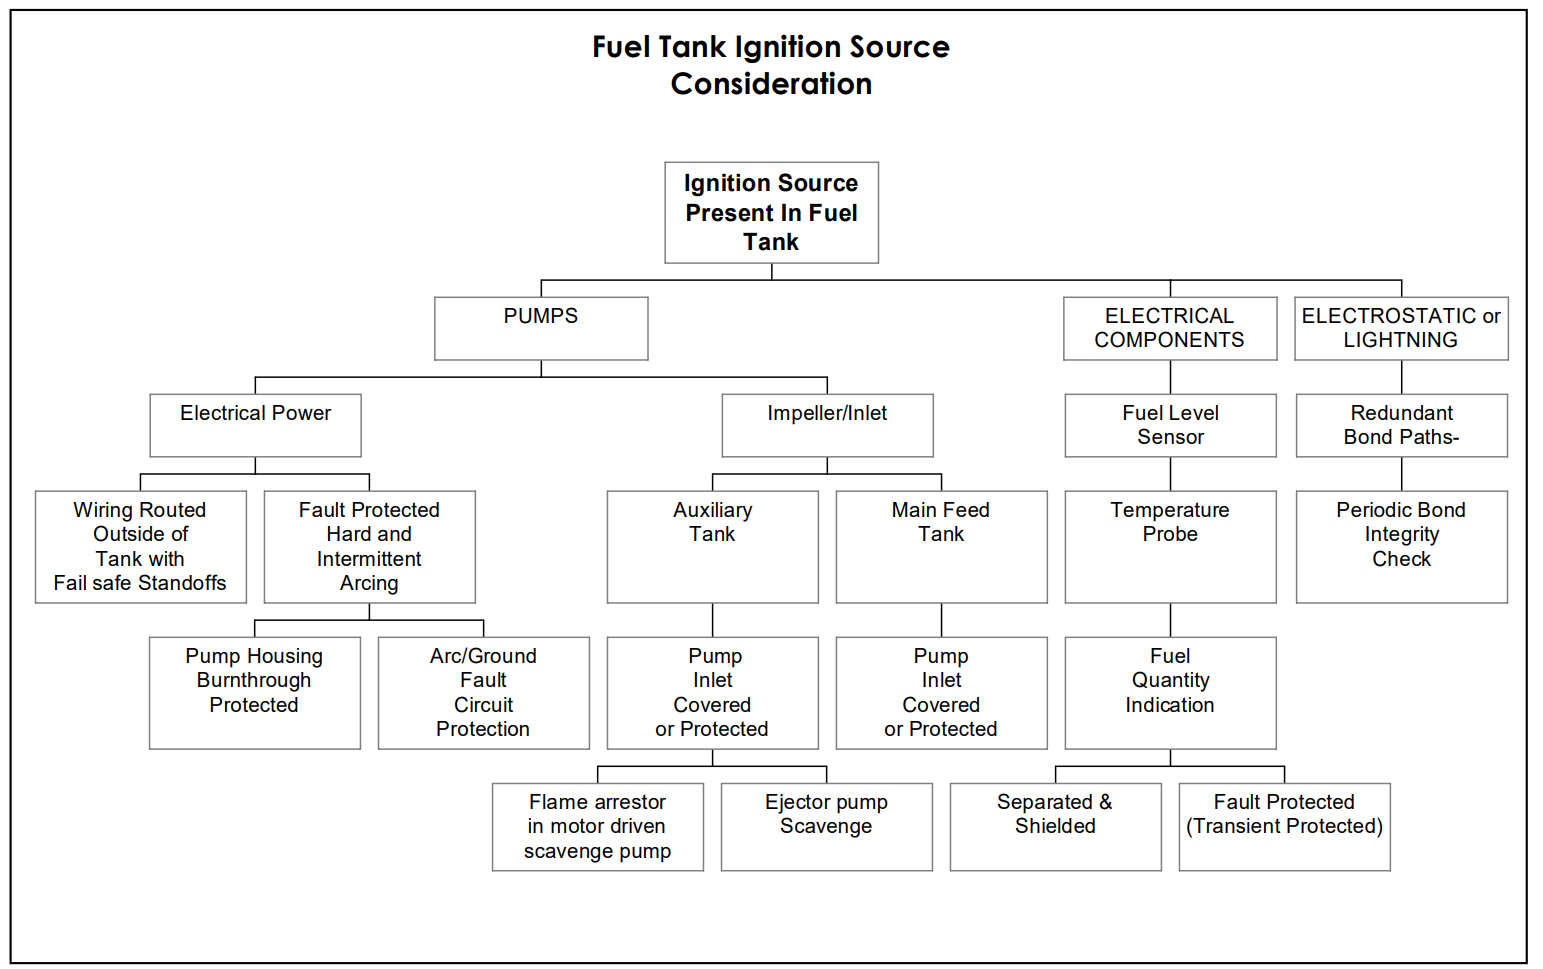 Fuel Ignition Sources